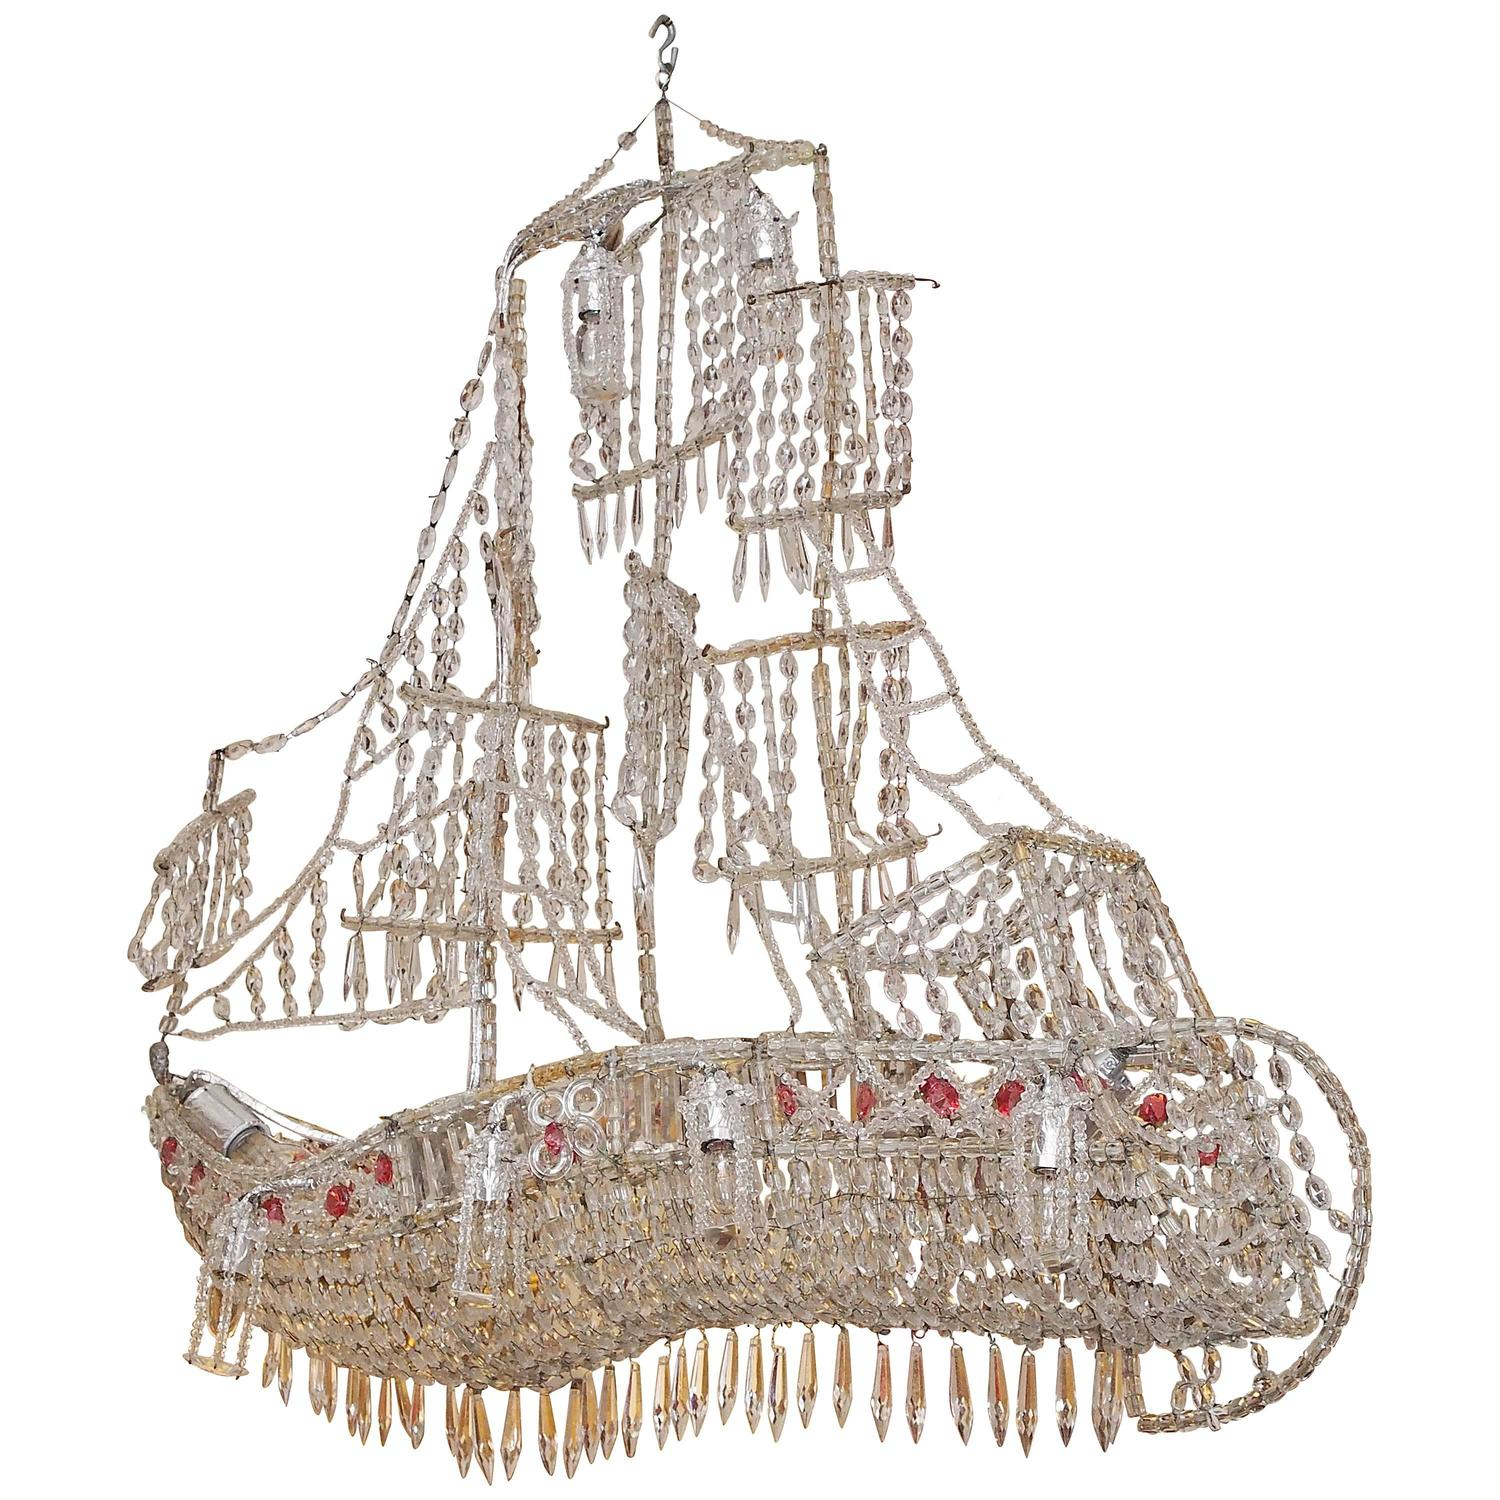 Italian Crystal Chandelier on Wire Frame in the Form of a